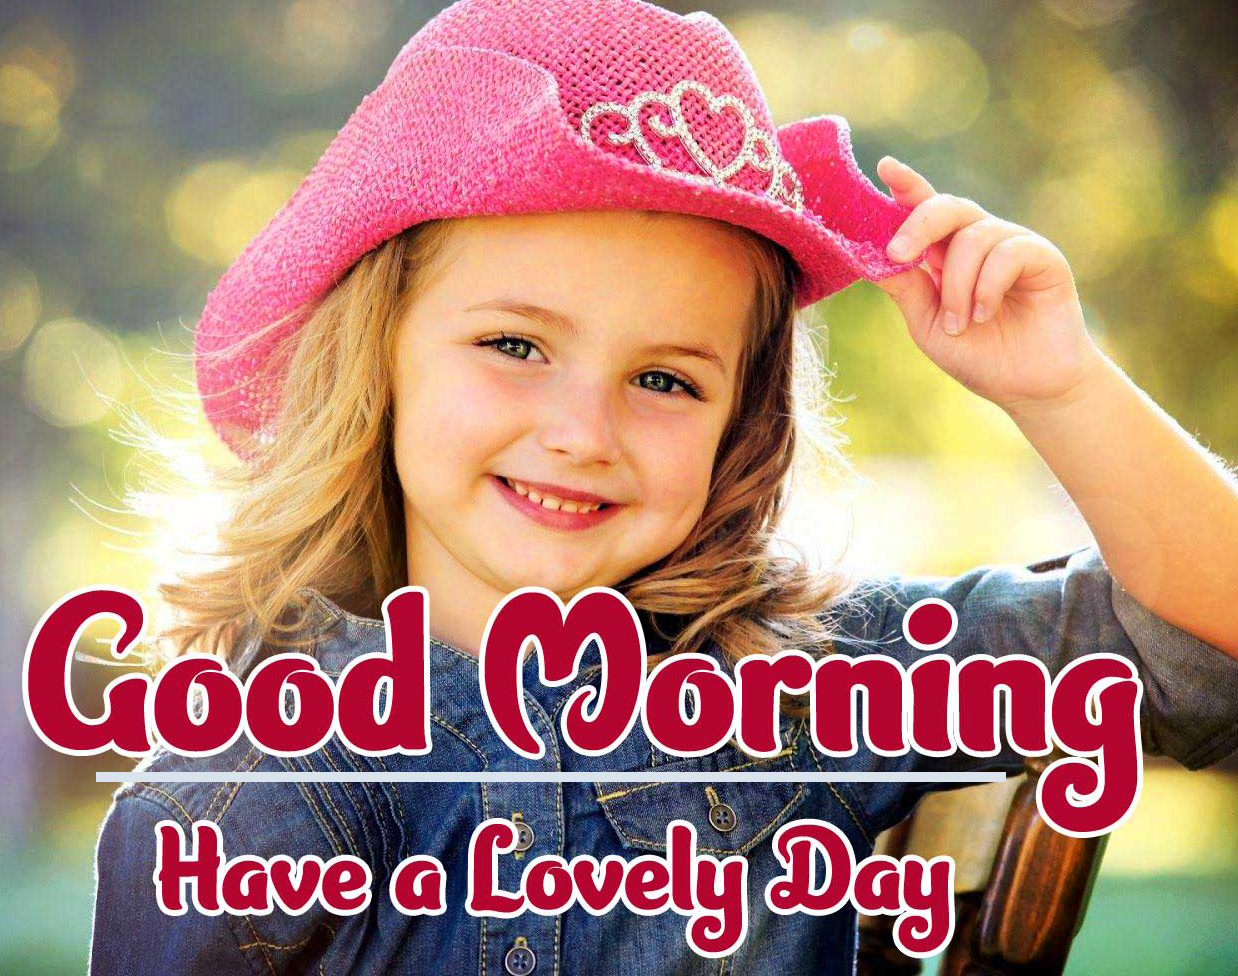 2021 Good Morning Images Wallpaper for Facebook